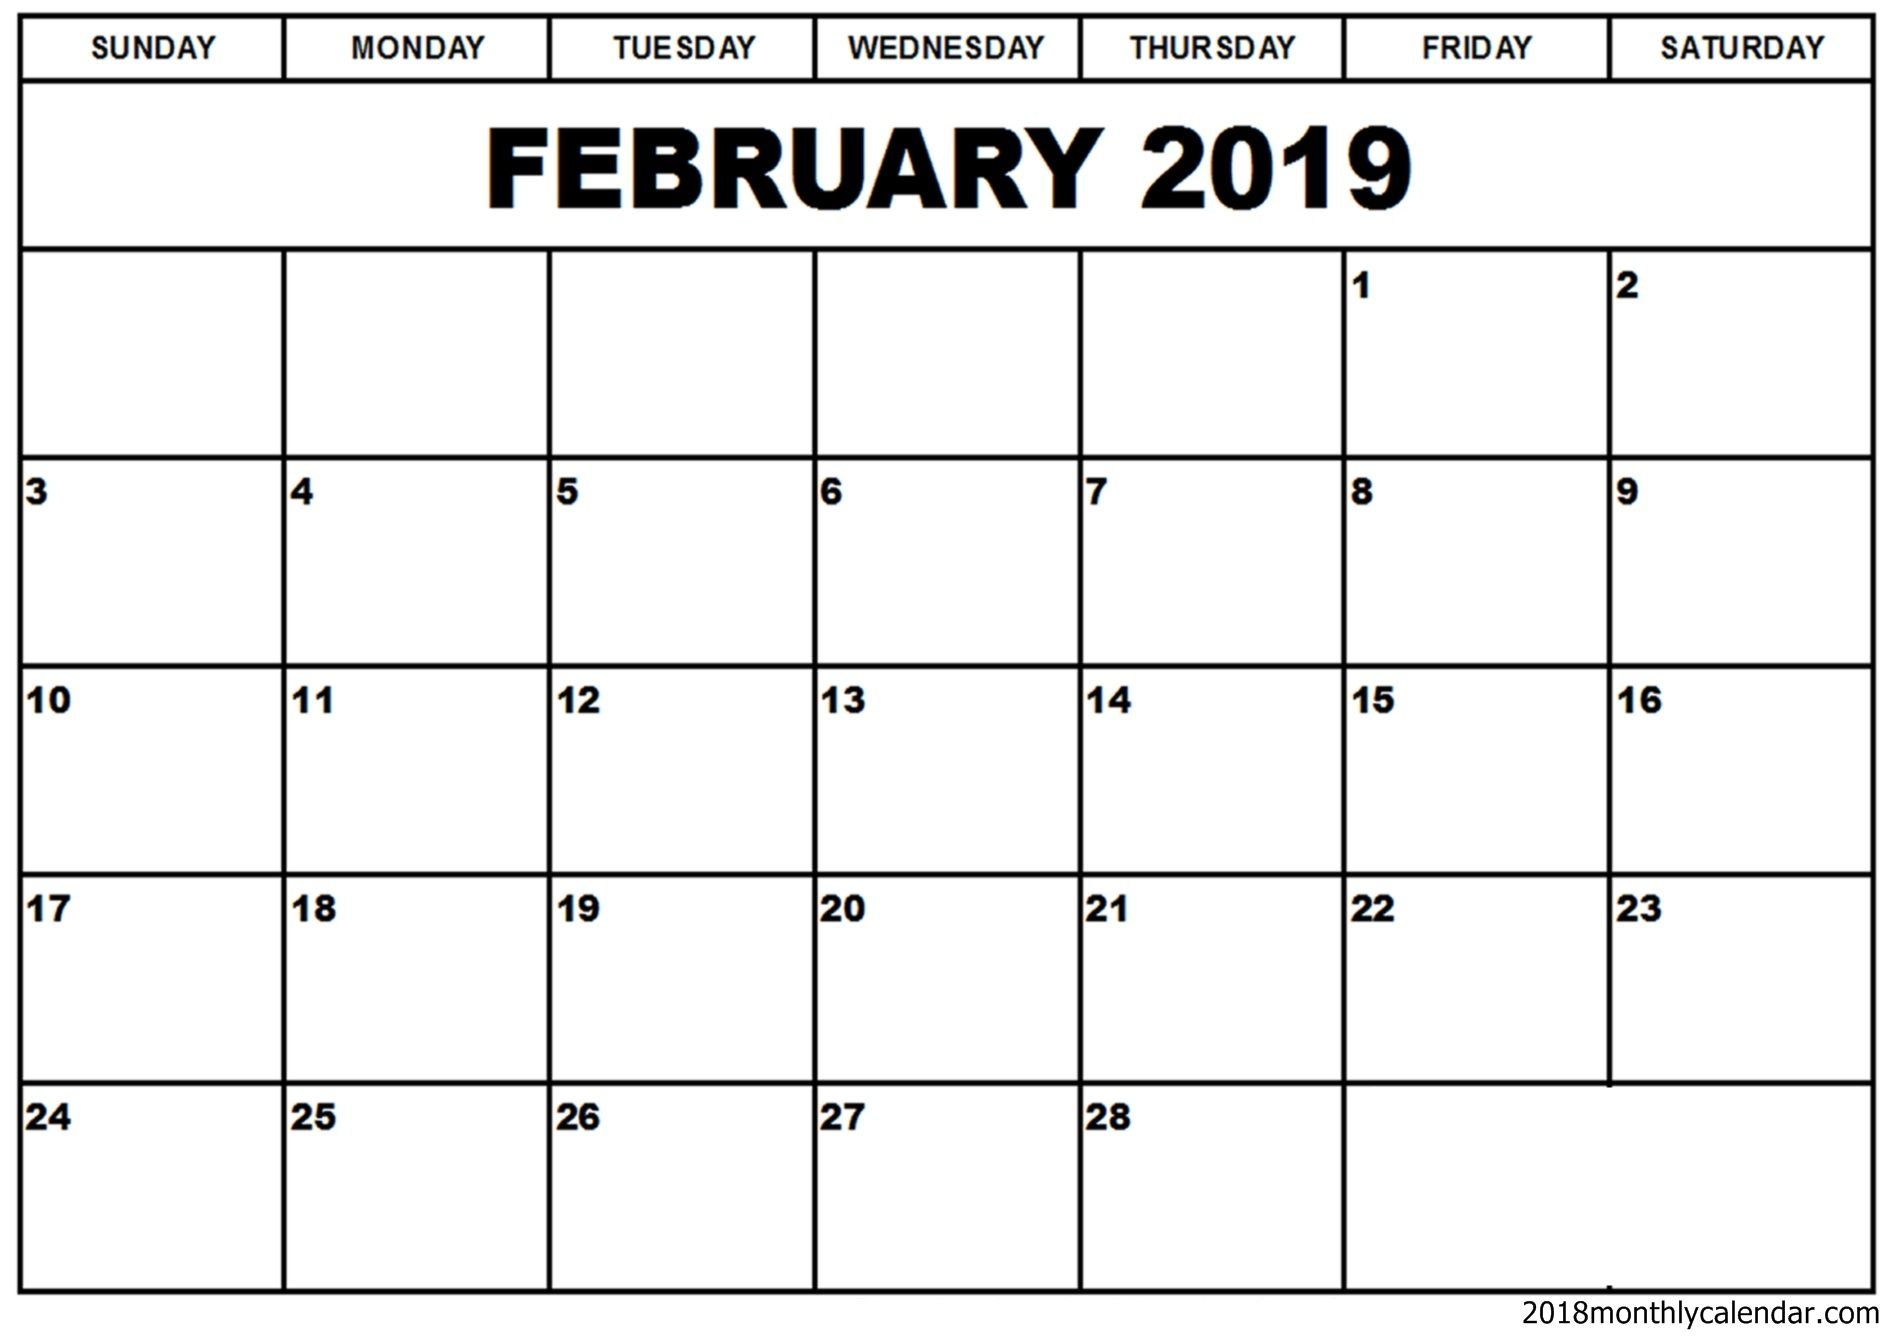 2019 Calendar Printable Word February 2019 Calendar Word Template | Free Printable Monthly